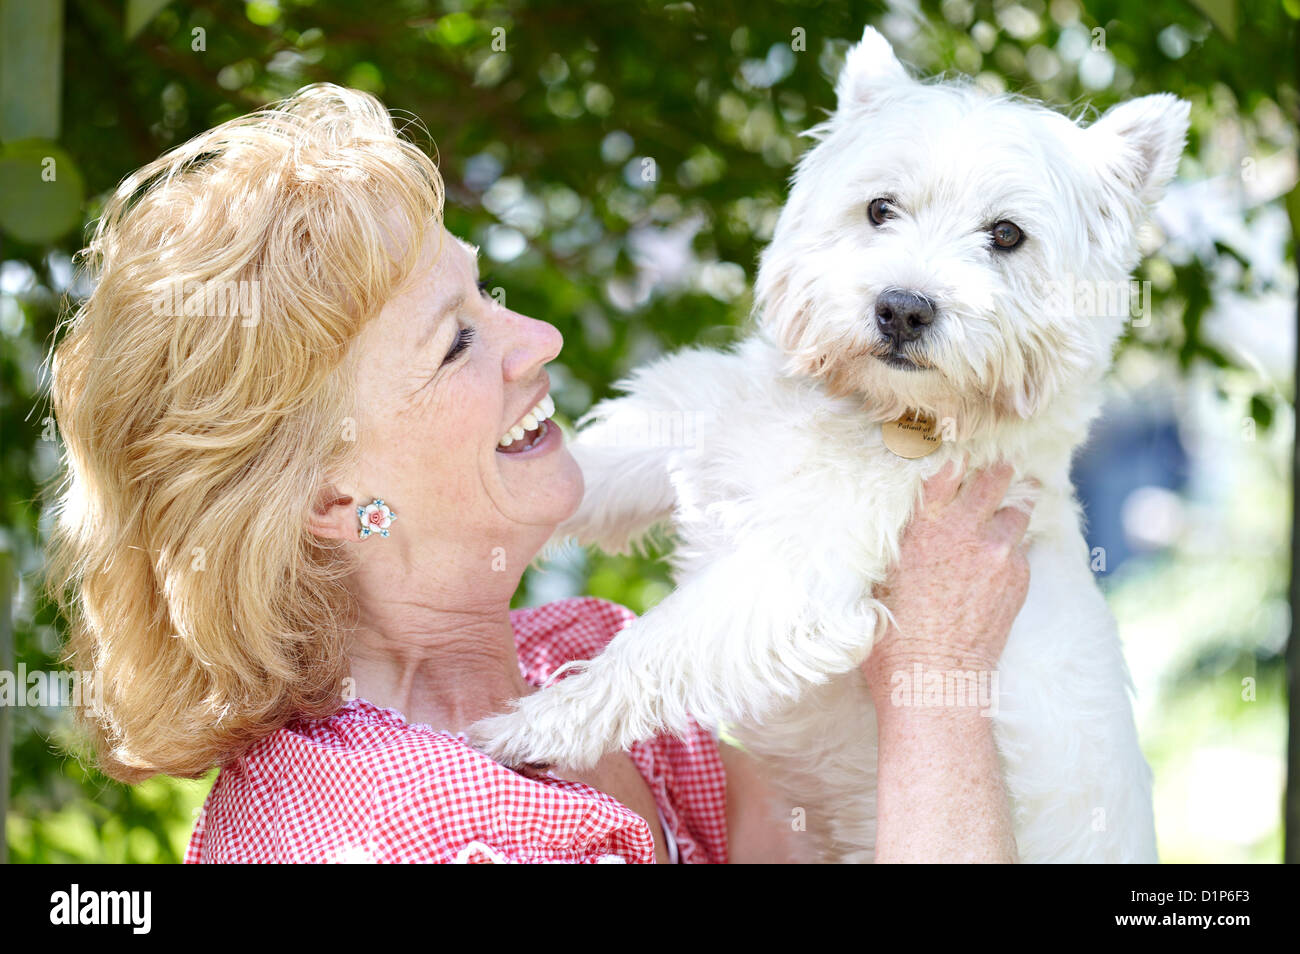 Woman with pet dog - Stock Image